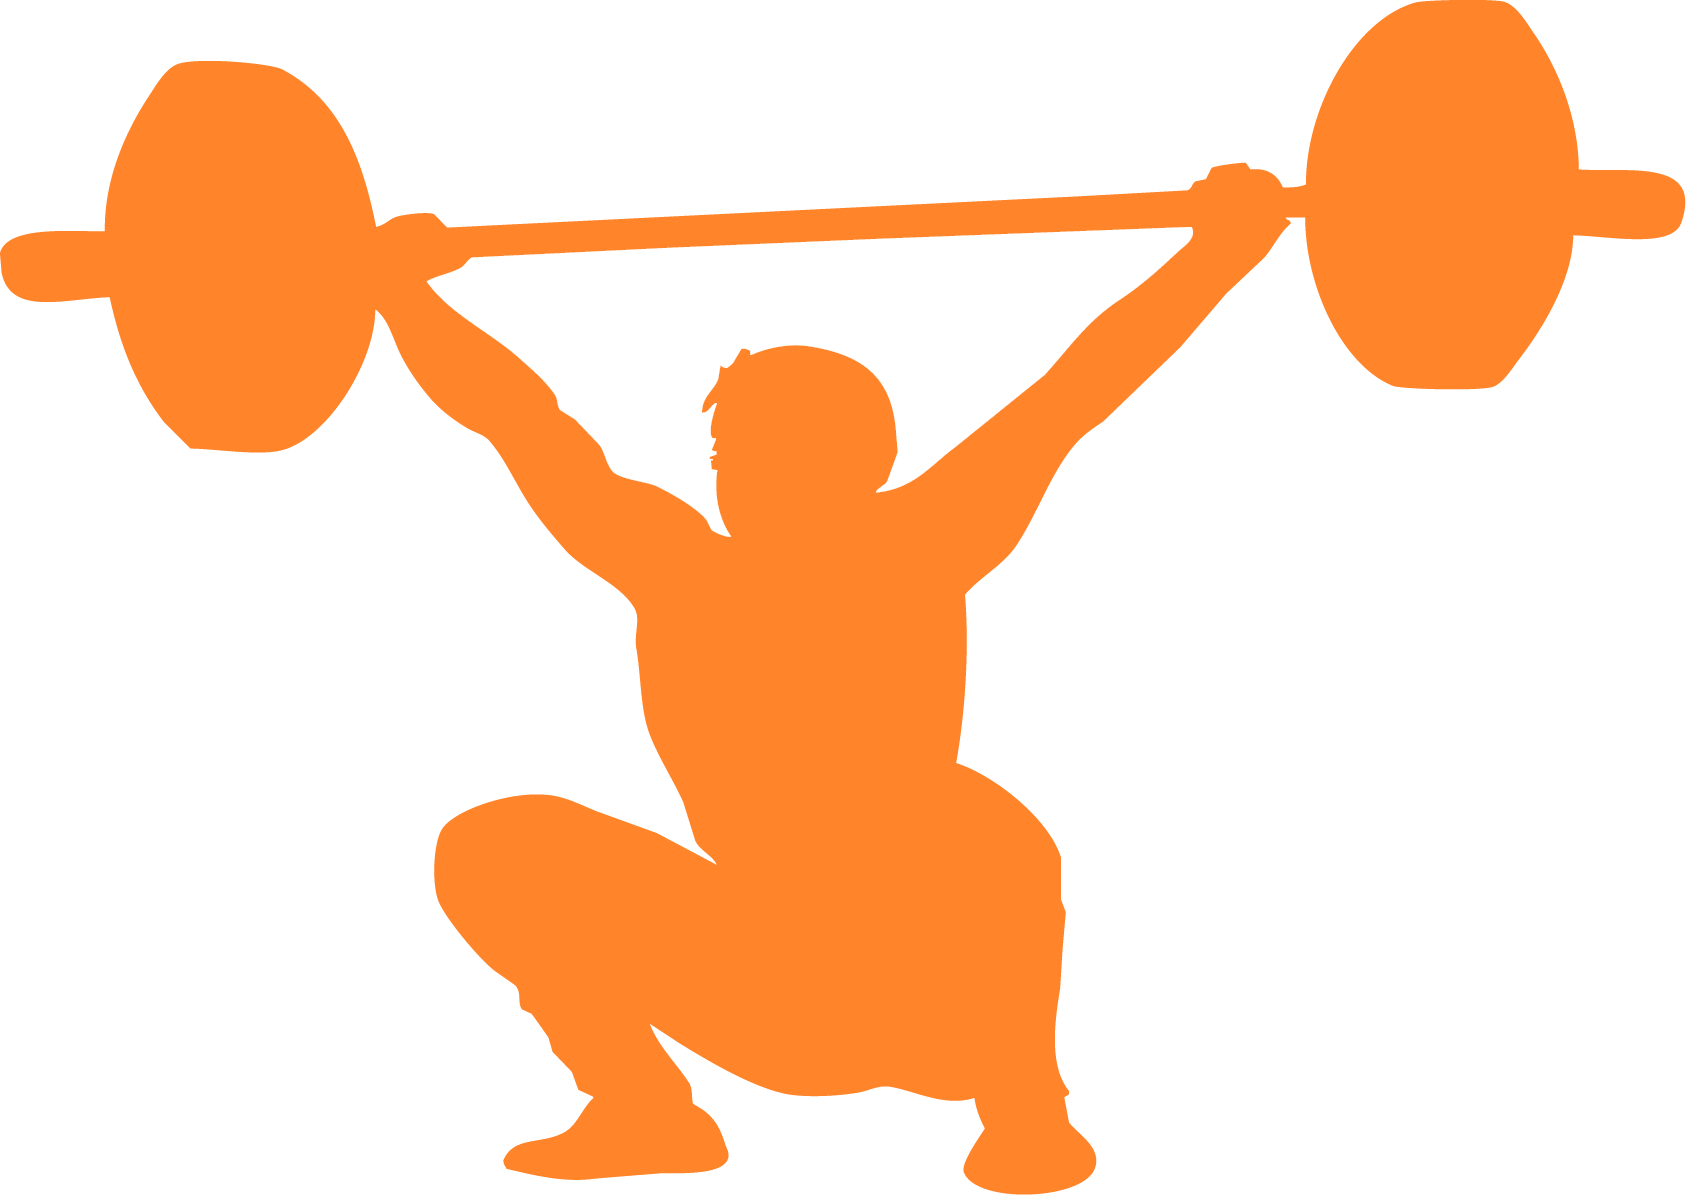 Exercise clipart weightlifting. Olympic crossfit clip art